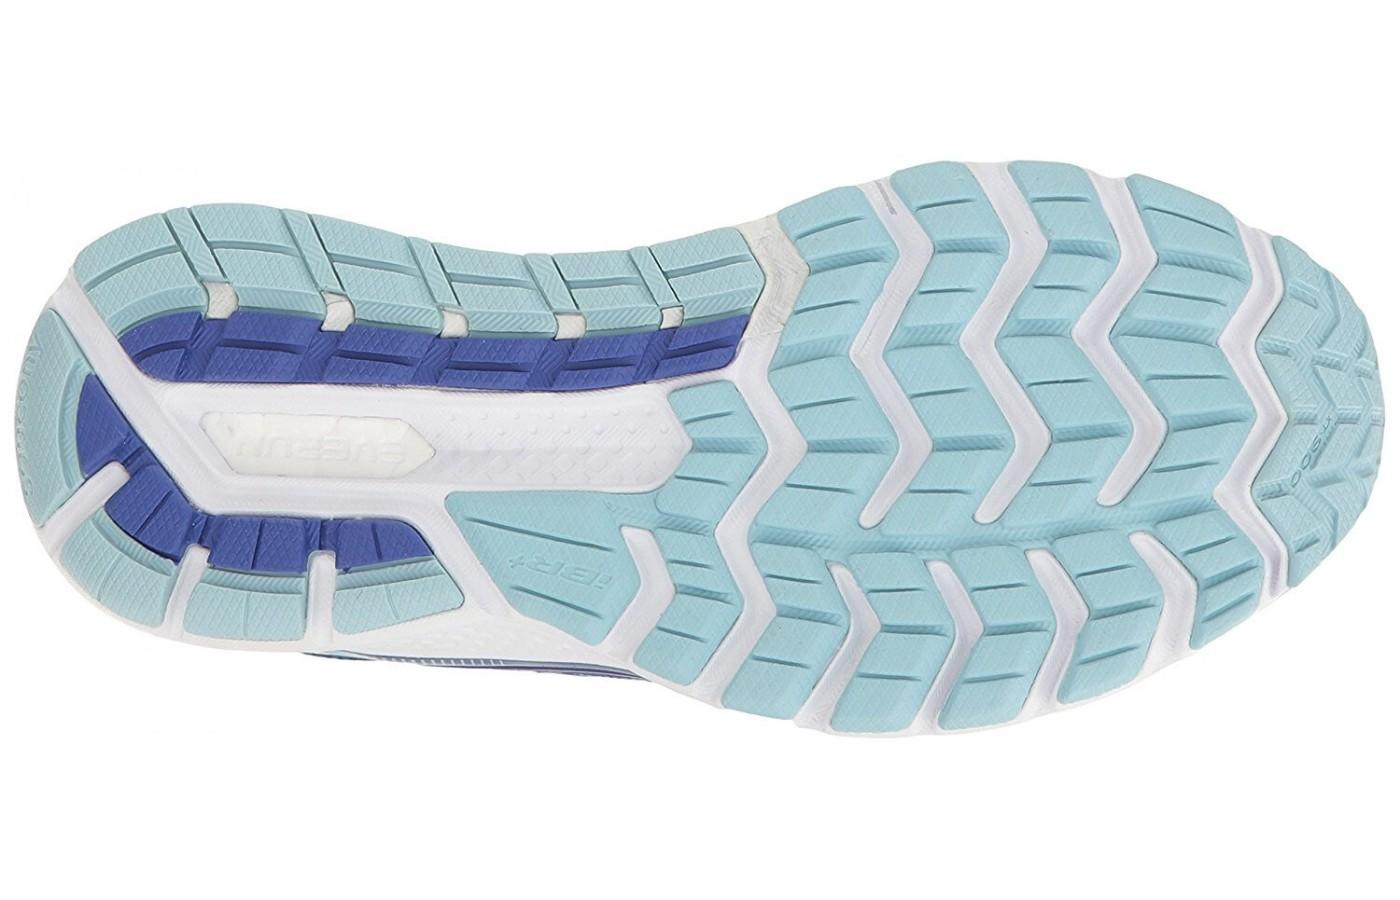 The outsole benefits from a combination of rubbers used in the heel and the forefoot